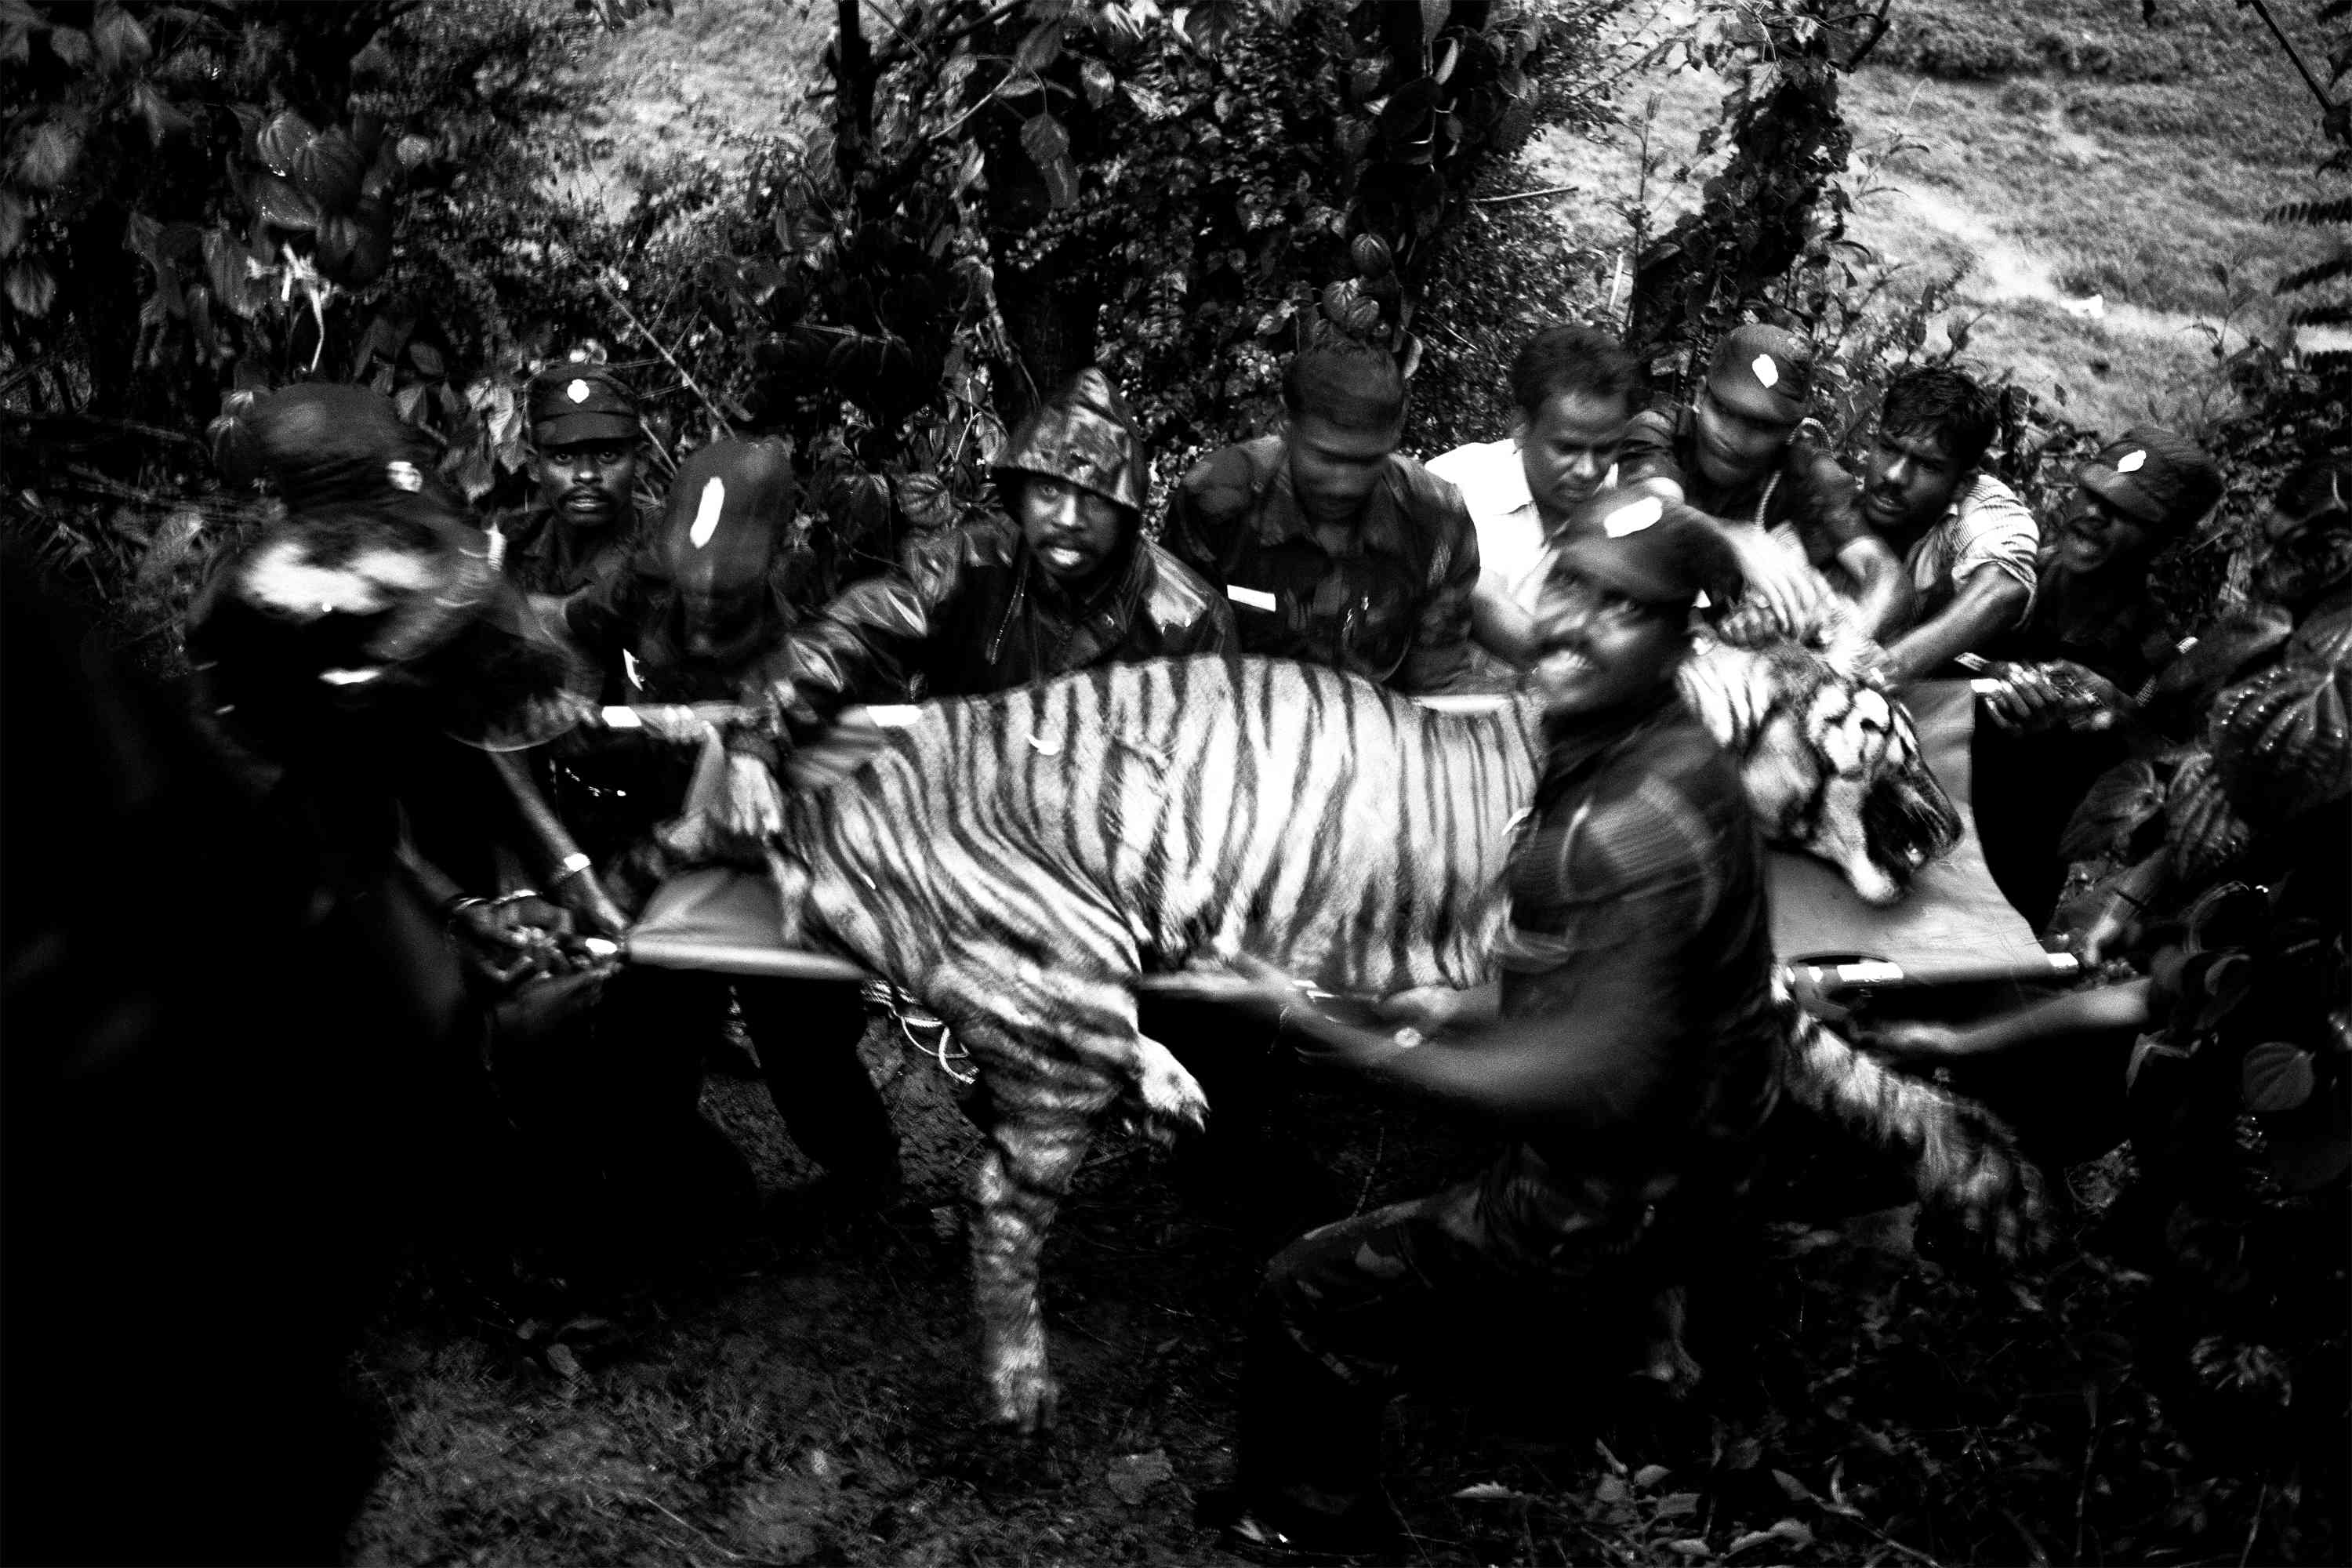 """'Out Cold' by Senthil Kumaran captures a tiger being rescued by forest department officials near the Anamalai Tiger Reserve, Tamil Nadu. """"He arrived to a scene of pandemonium – a wounded tiger cowering in fear, with a mob of five hundred village men armed with sticks and stones closing in on it."""" said the press note. """"Tragedy was averted by the quick response of the Forest Department team, whose members risked their lives to somehow control the crowd long enough to tranquillise the cat."""" The tiger, extinct in many parts of the world, is classified as endangered by the IUCN red list."""